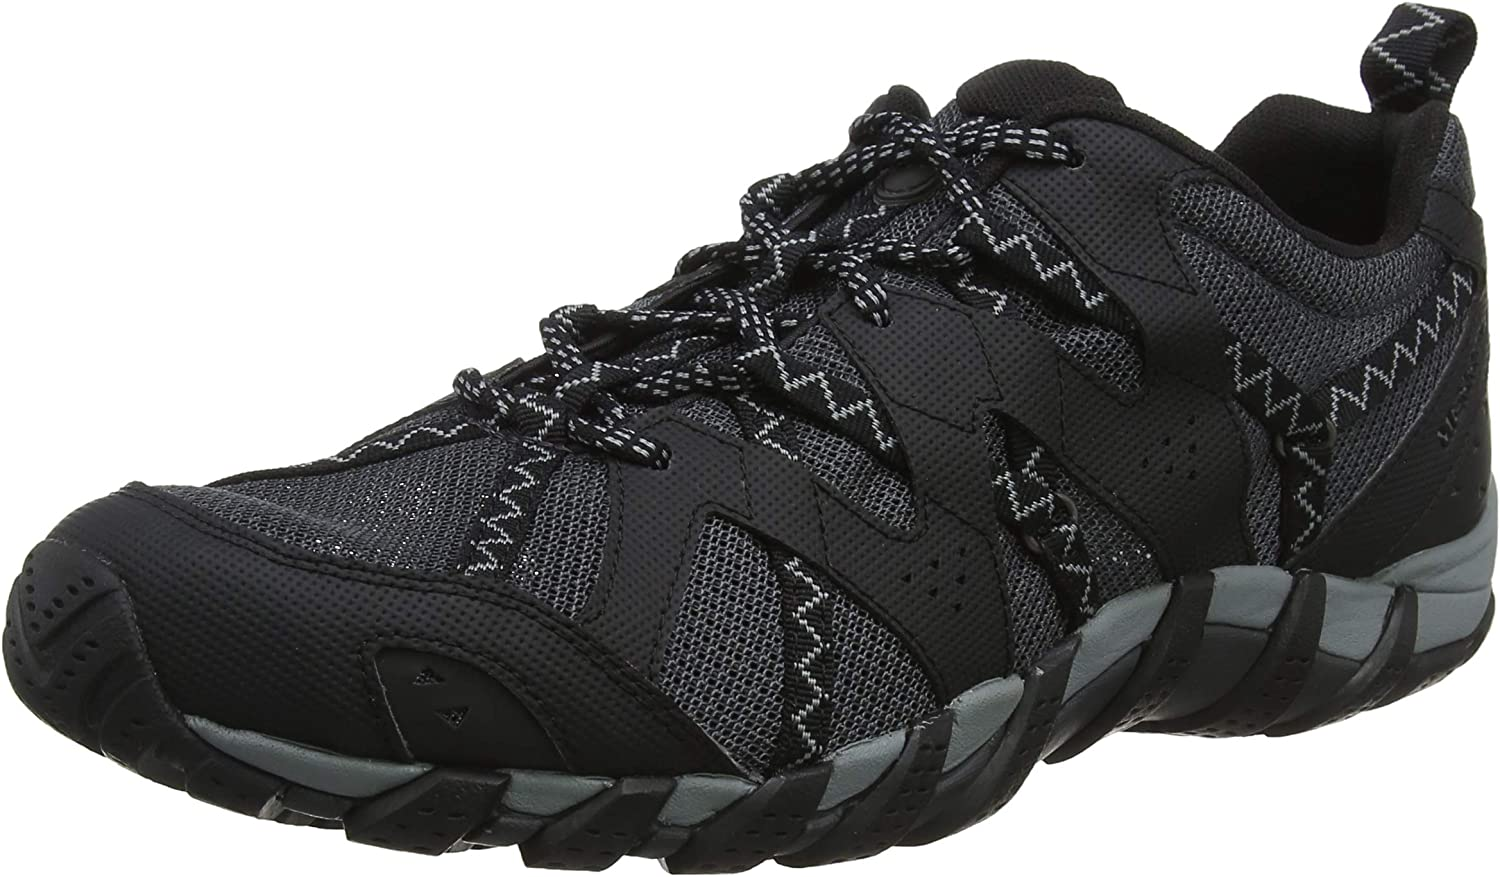 Merrell Men's Waterpro Maipo 2 Water shoes